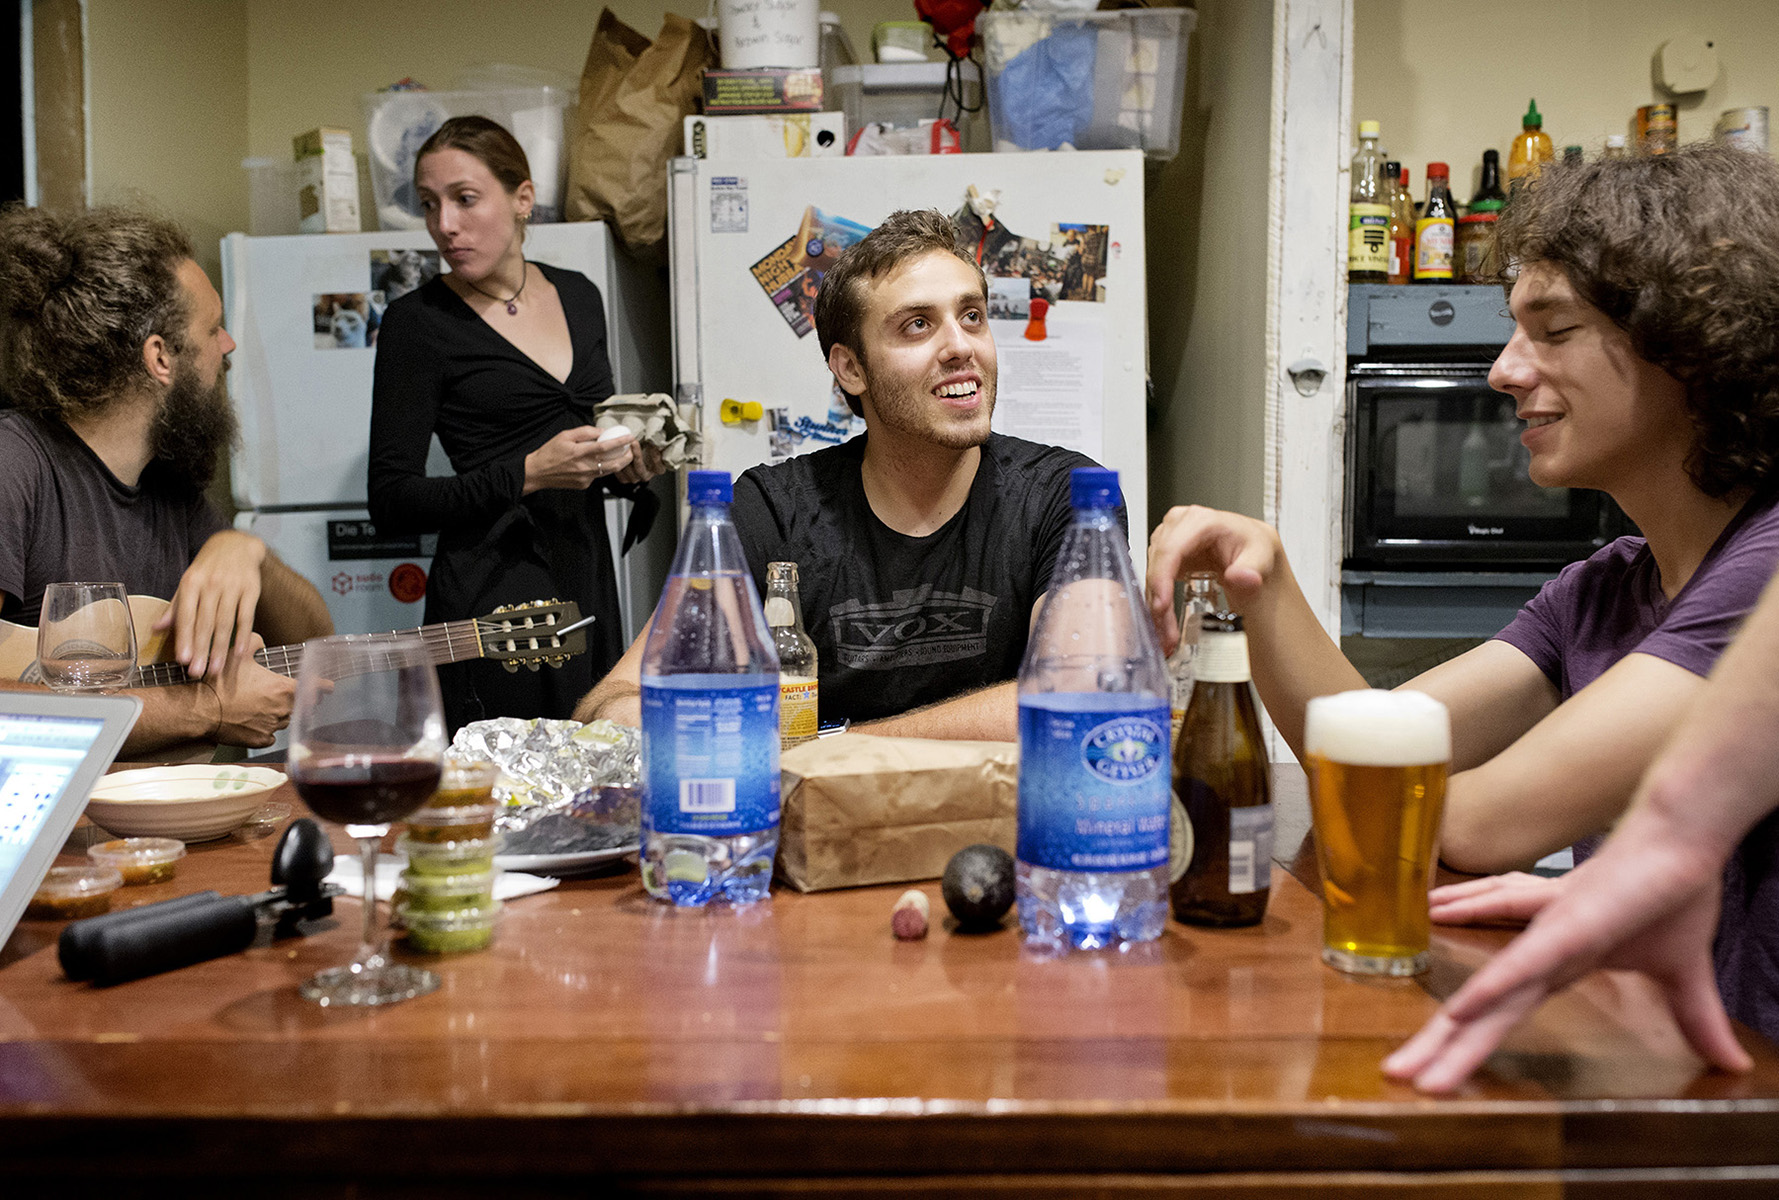 Jordan Leigh, a programmer who moved from Chicago to build a sports app, eats dinner and relaxes with his housemates in the communal kitchen at 20 Mission in San Francisco, Calif., in August 2015. The co-living movement has become very popular in the region partially as a solution to the loneliness of modern-day life, the high cost of housing and the large numbers of mostly young people to relocating to the area to participate in the tech boom. The building especially appeals to recent transplants who gain an instant group of friends as soon as they move in.